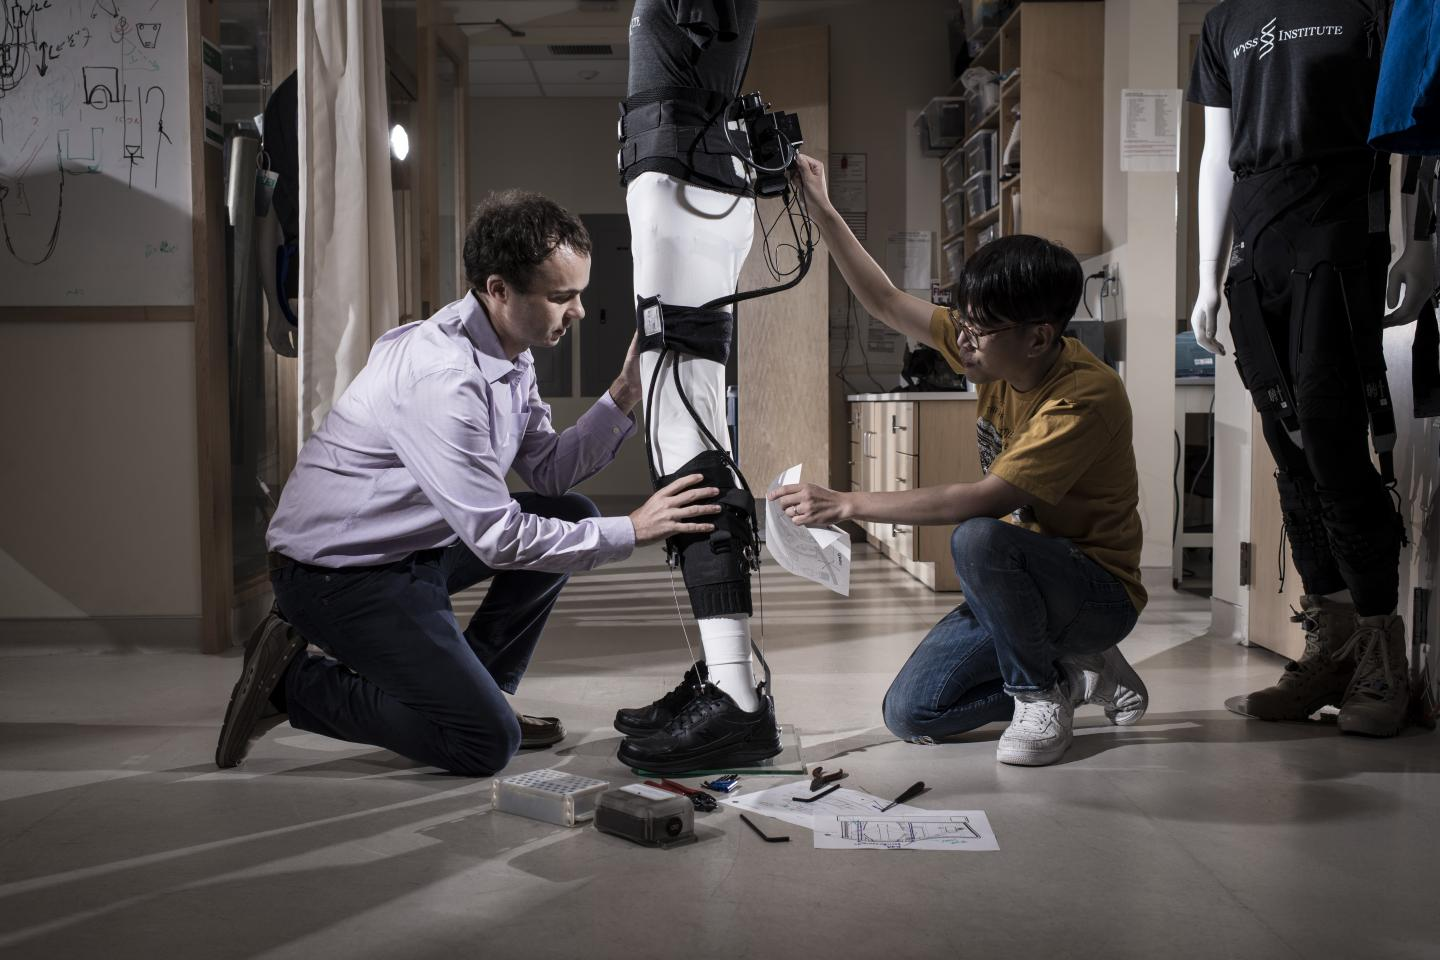 Wyss Institute's Ankle-Assisting Soft Wearable Exosuit